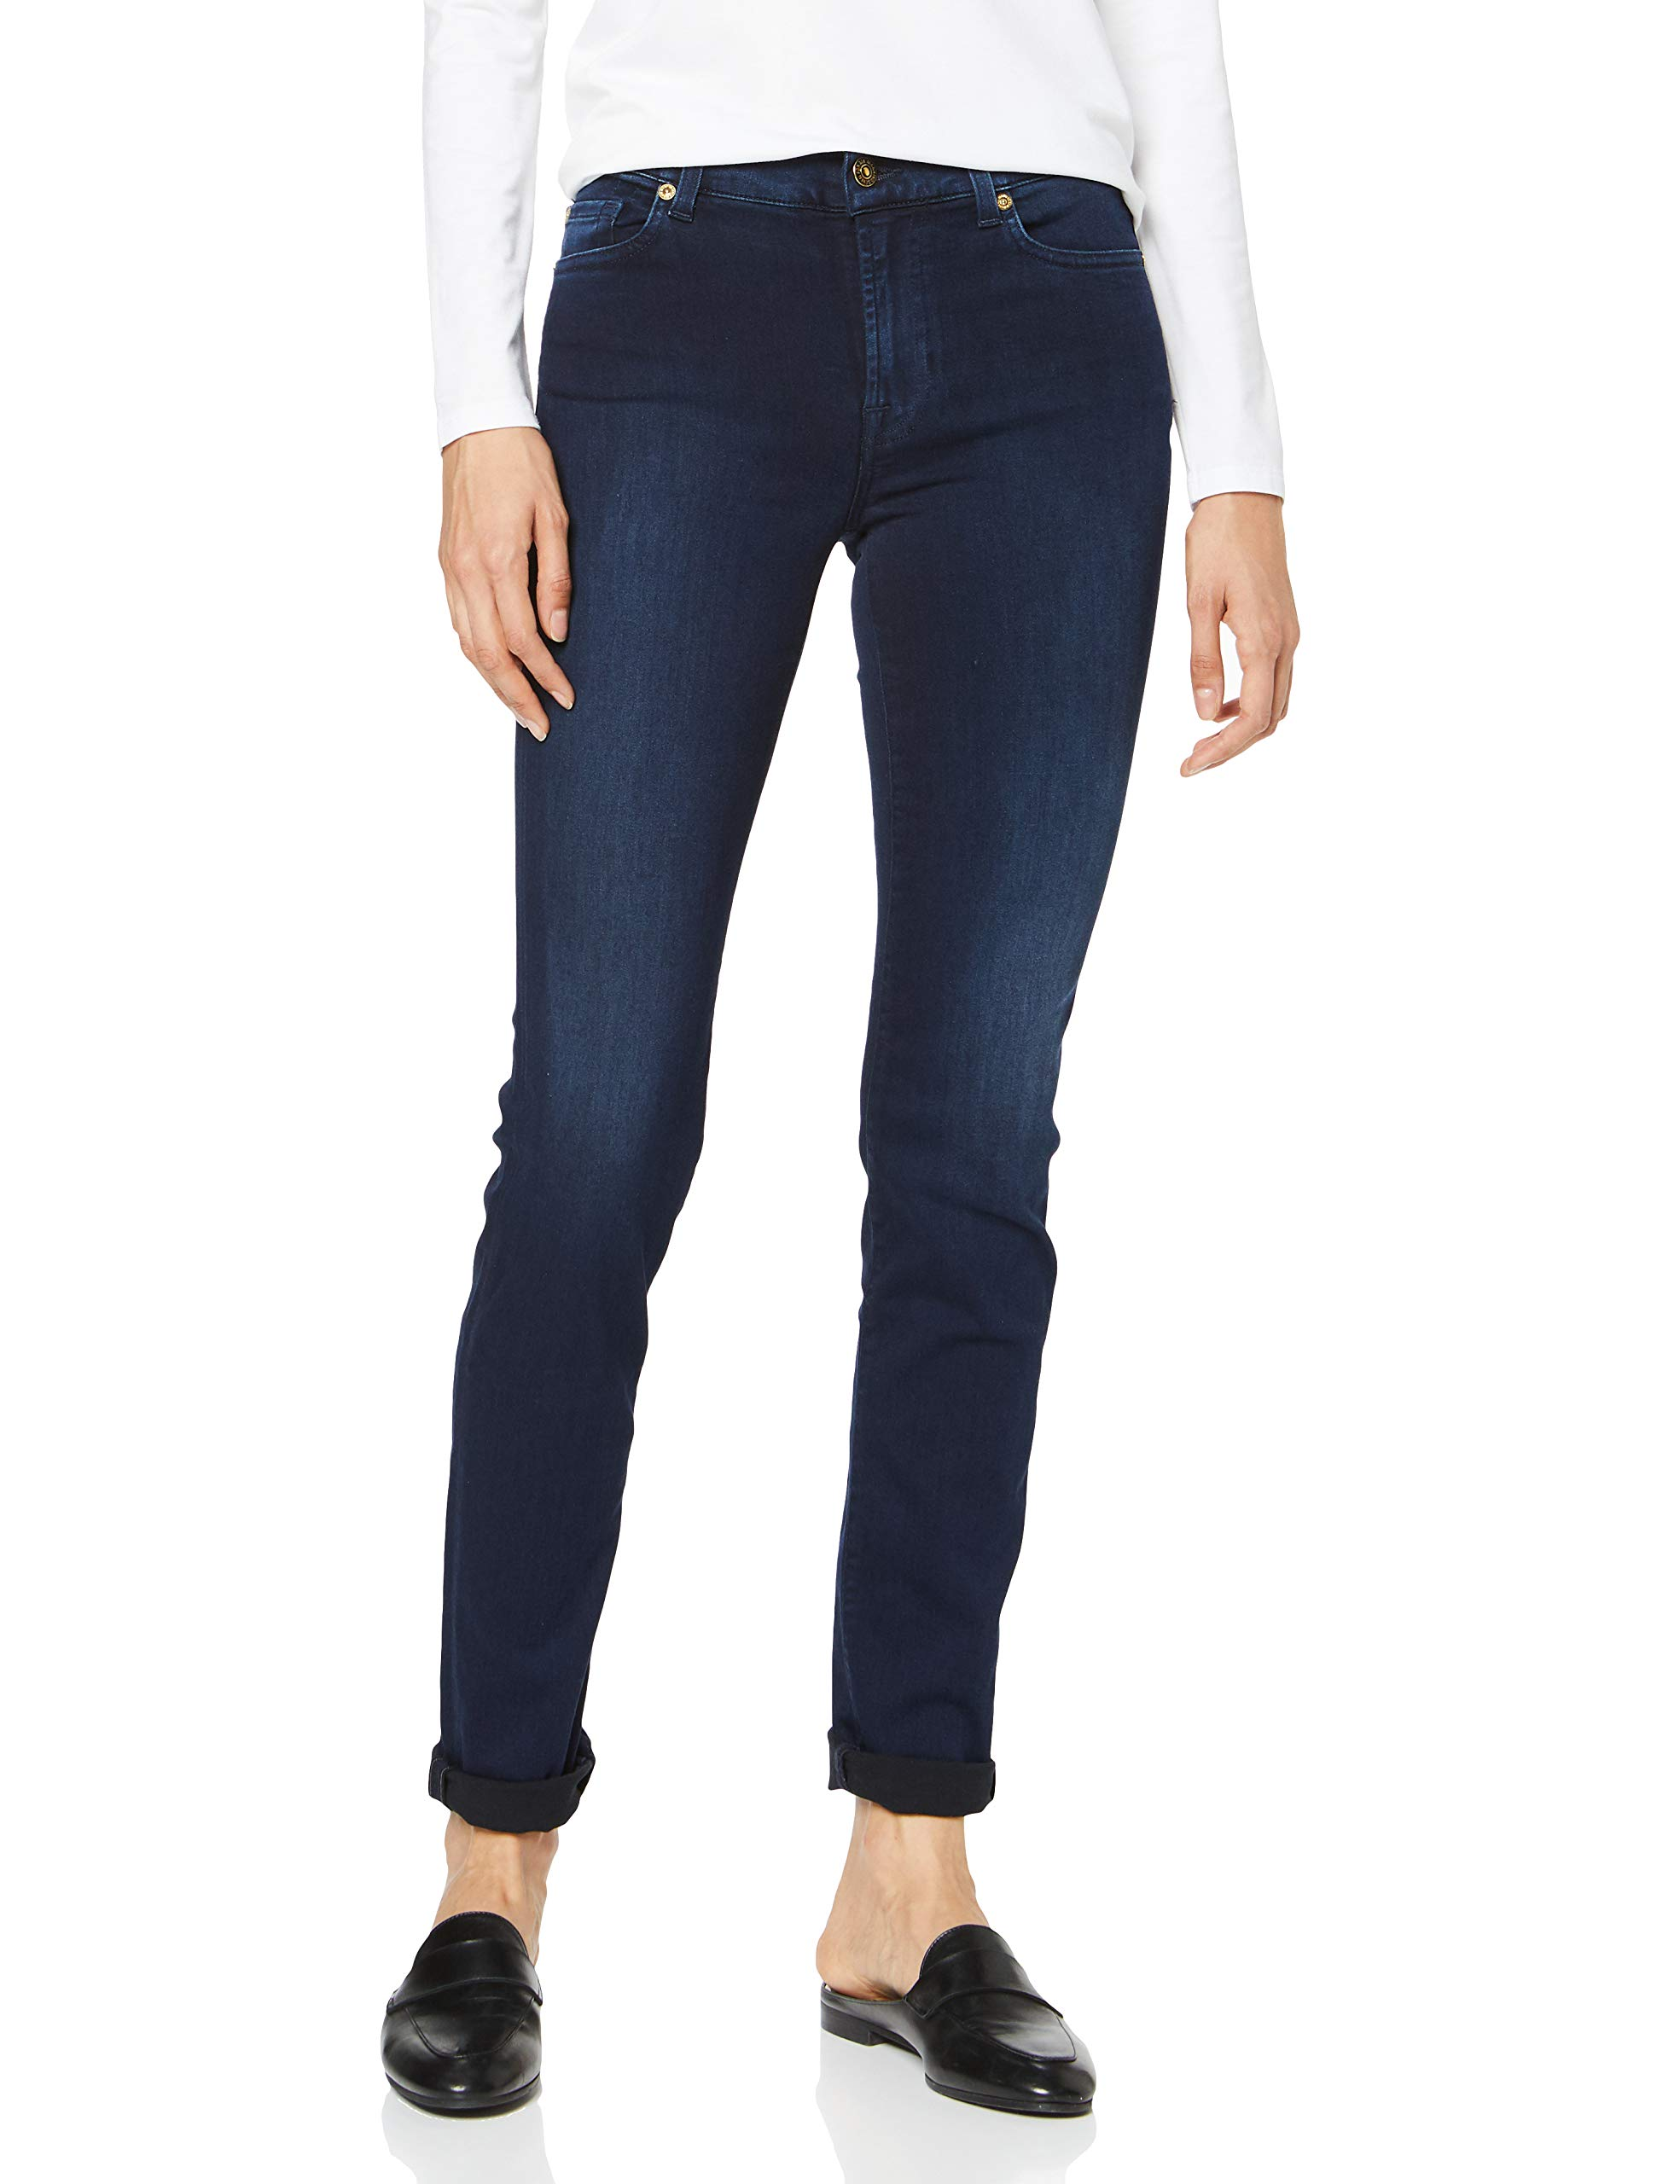 For Fabricant26 All 7 325Femme BuW26 Jean SlimBleudark Mankind Blue Rozie l33taille oCxBde